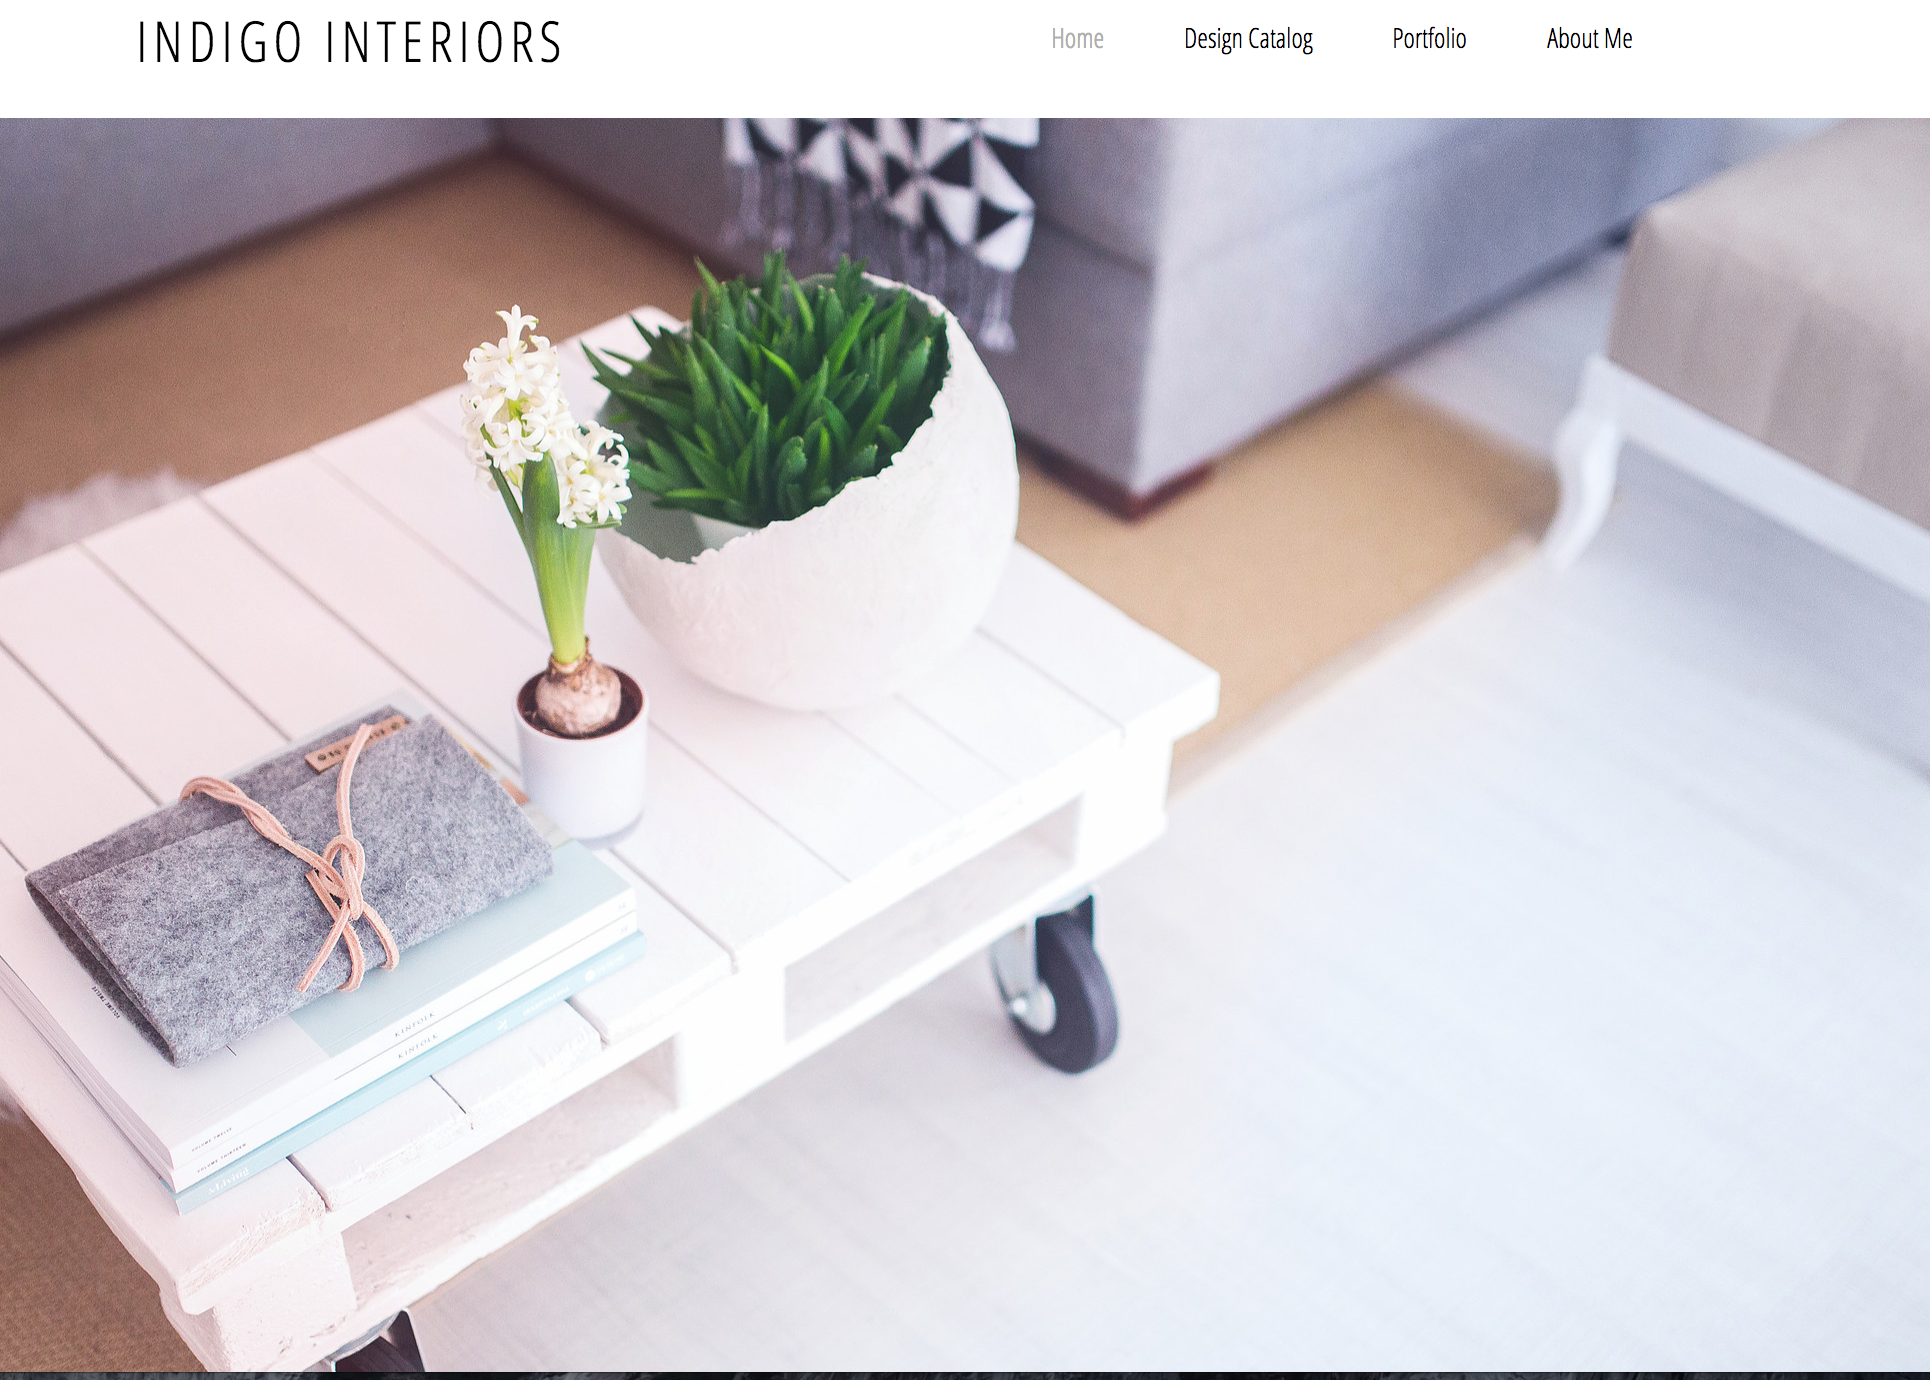 Indigo Interior Designs